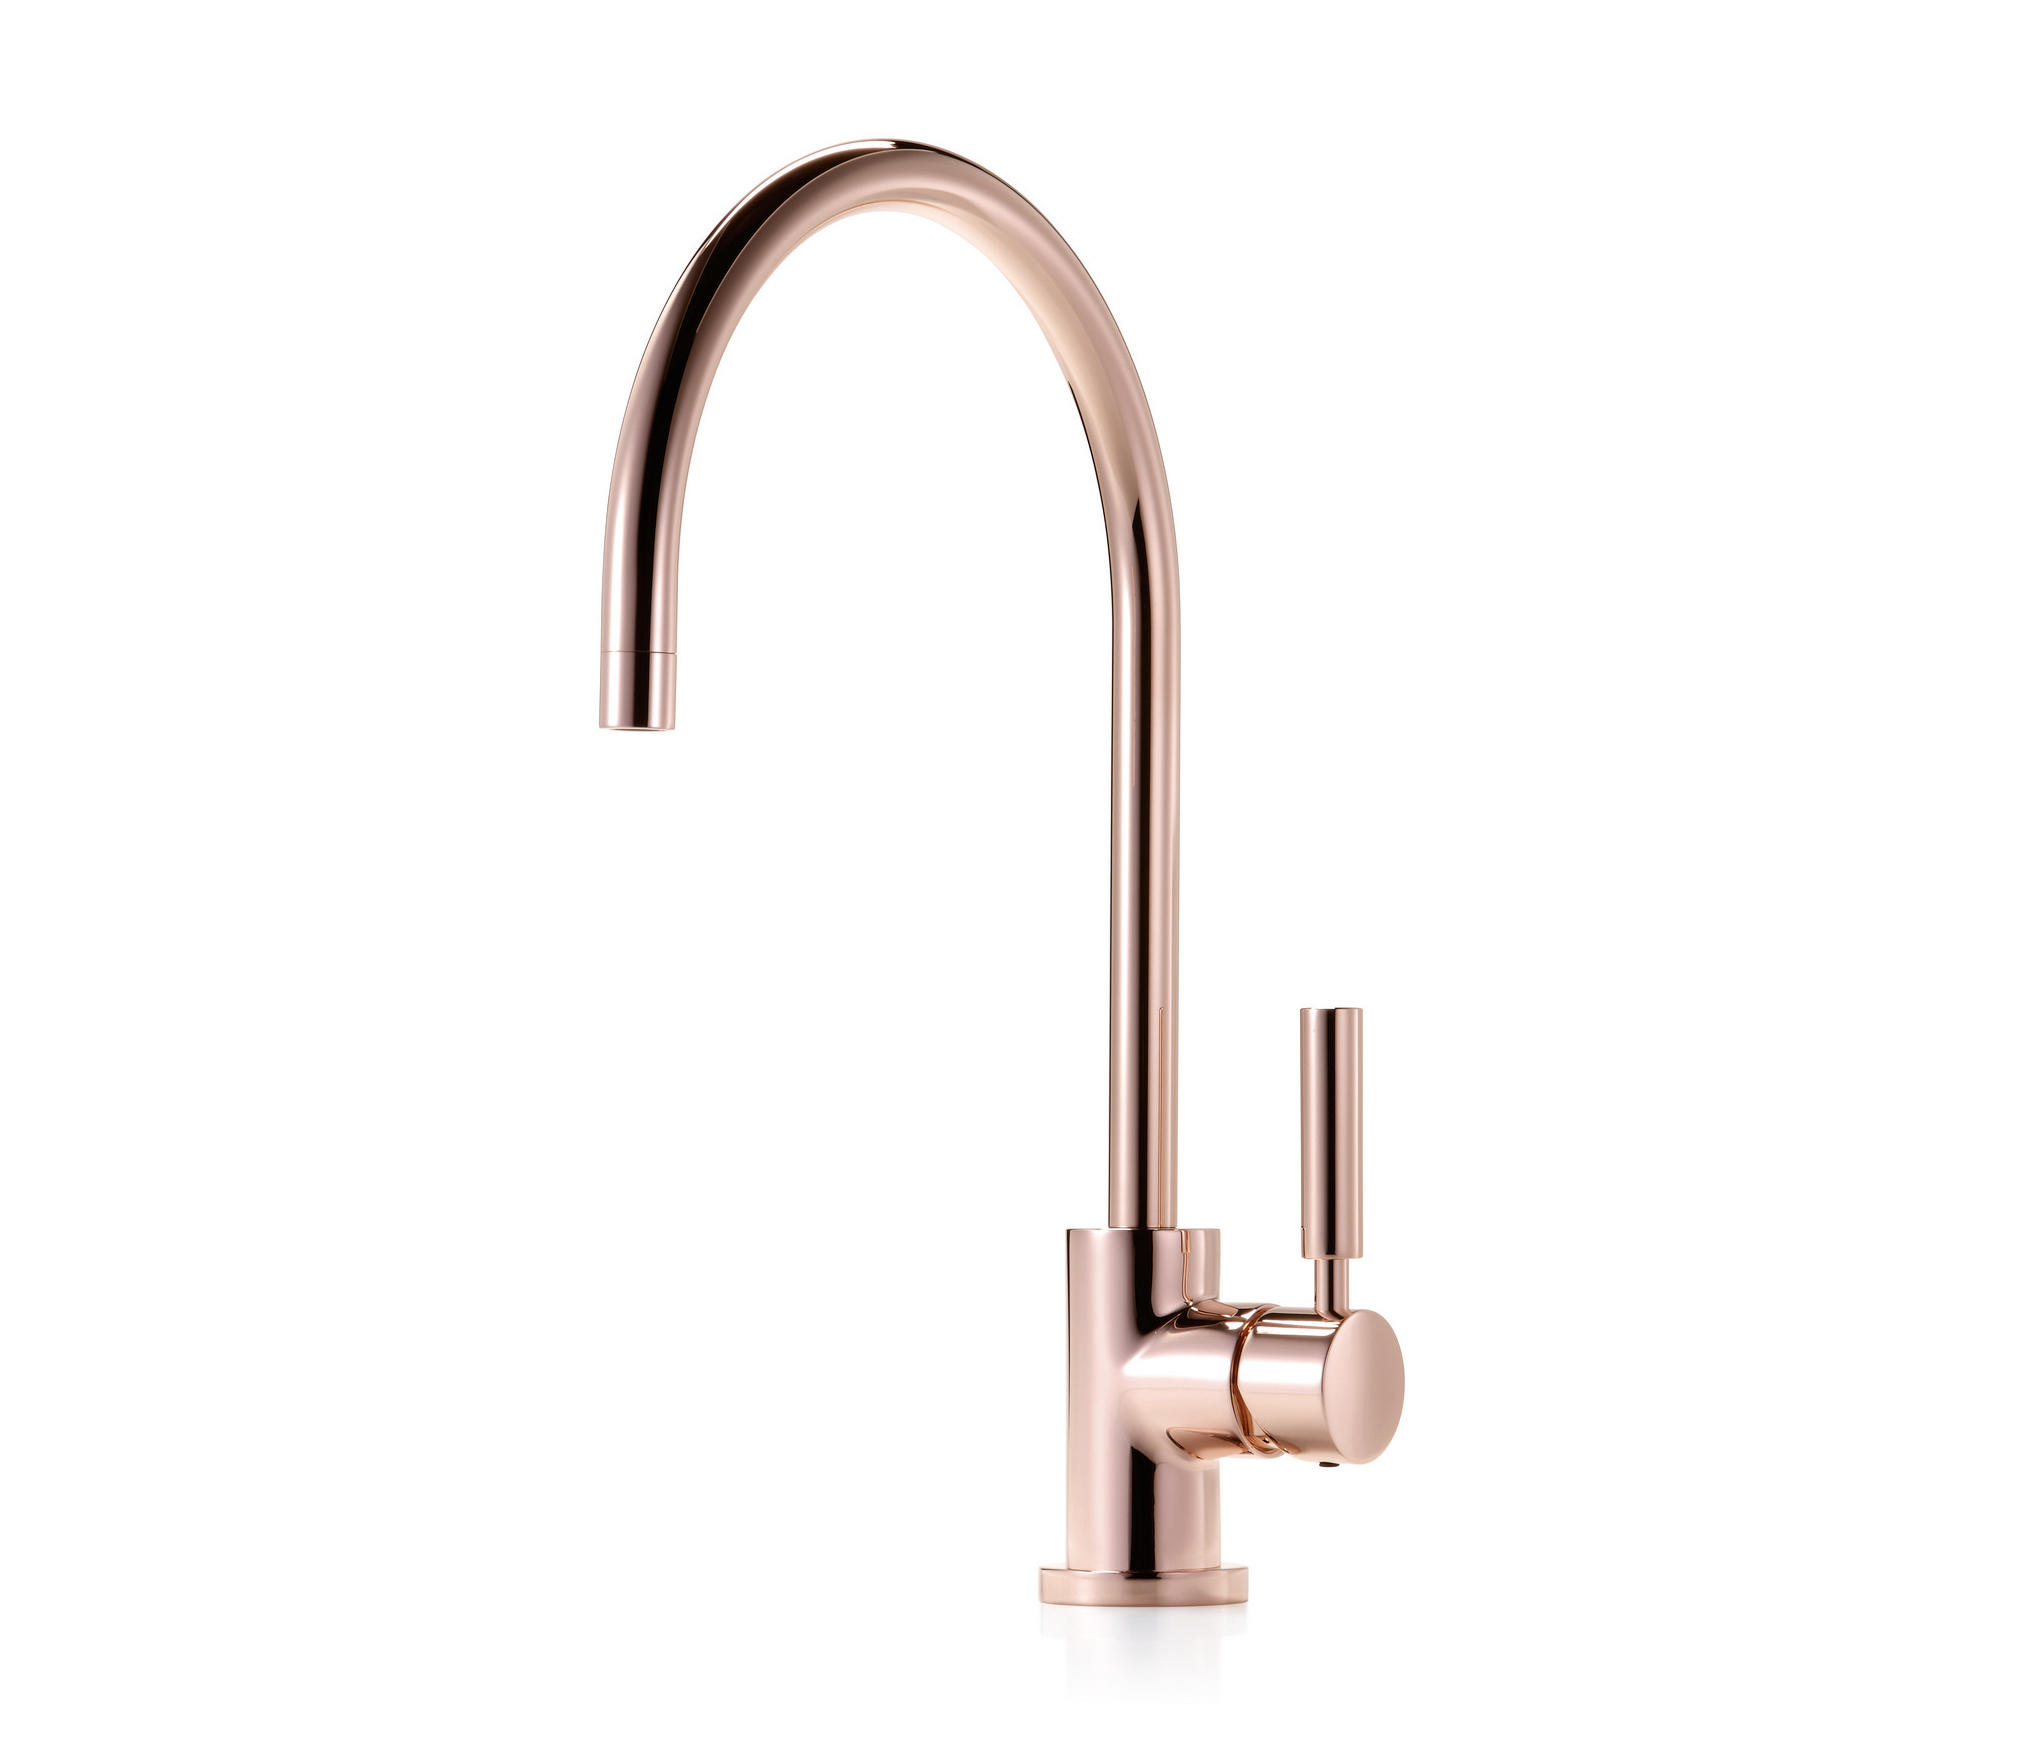 Cyprum Kitchen Kitchen Taps From Dornbracht Architonic